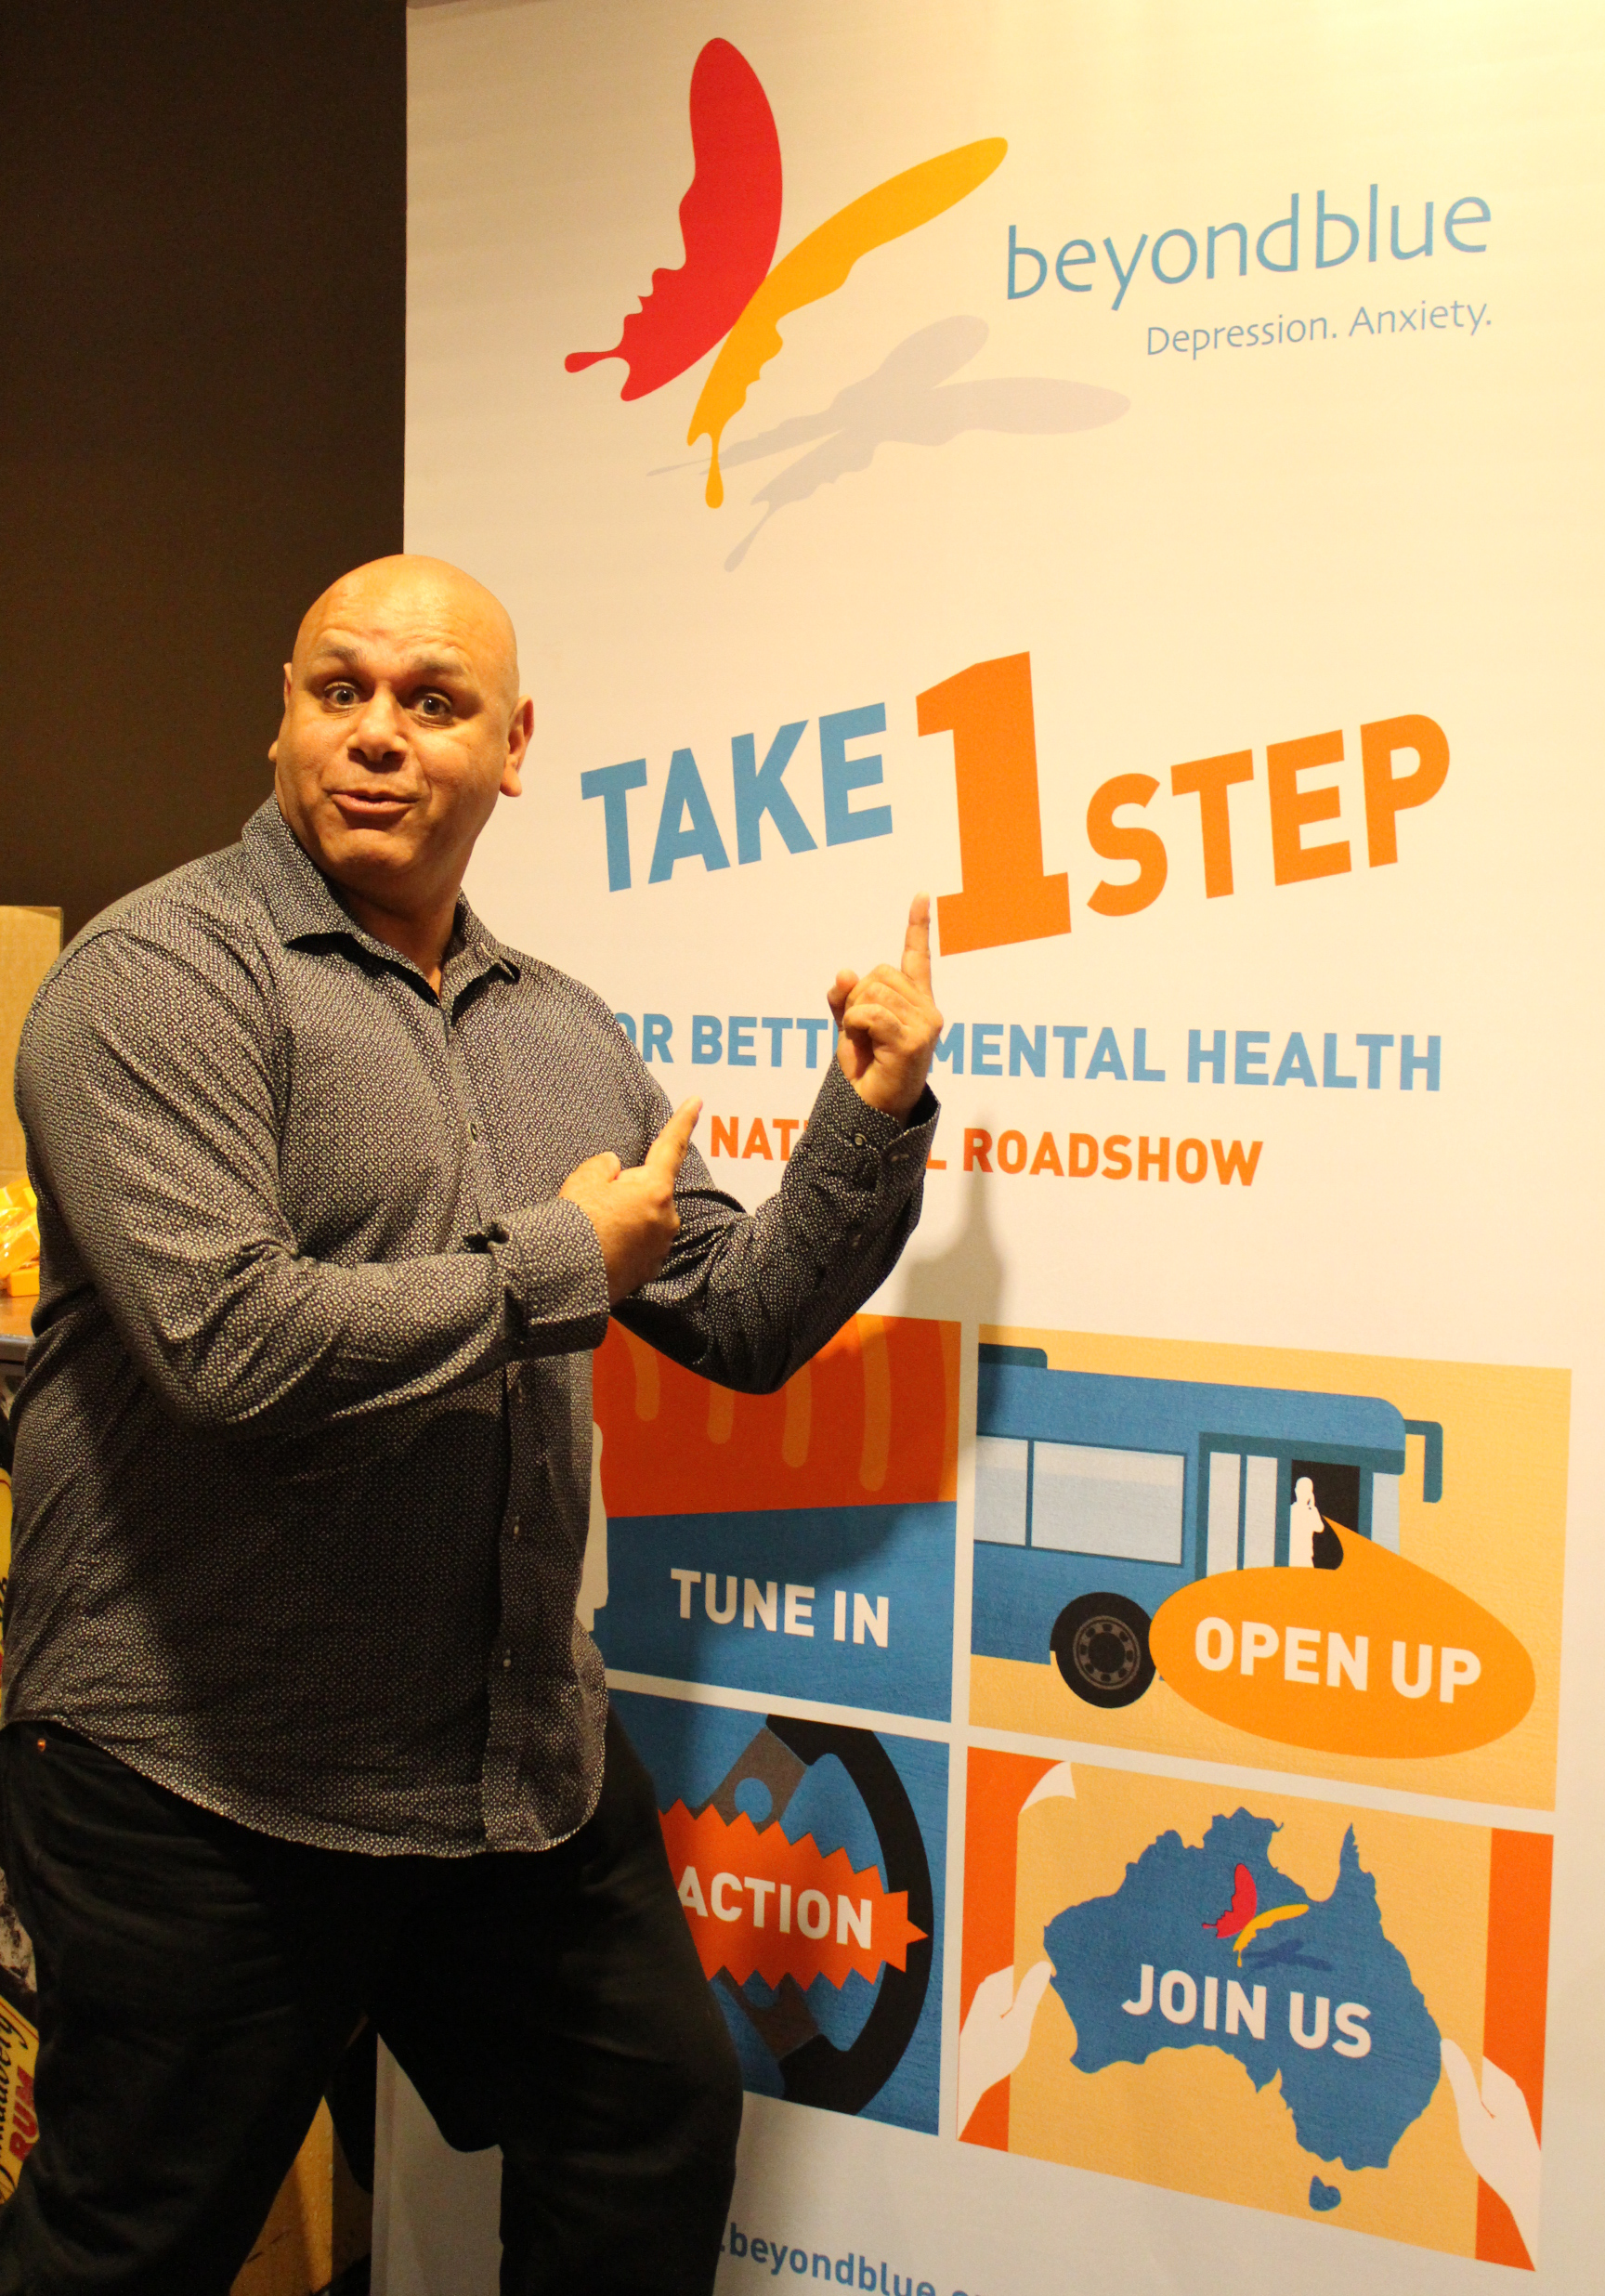 Comedian Kevin Kropinyeri supporting the 'Take 1 step' message through comedy in Cobar: NSW.